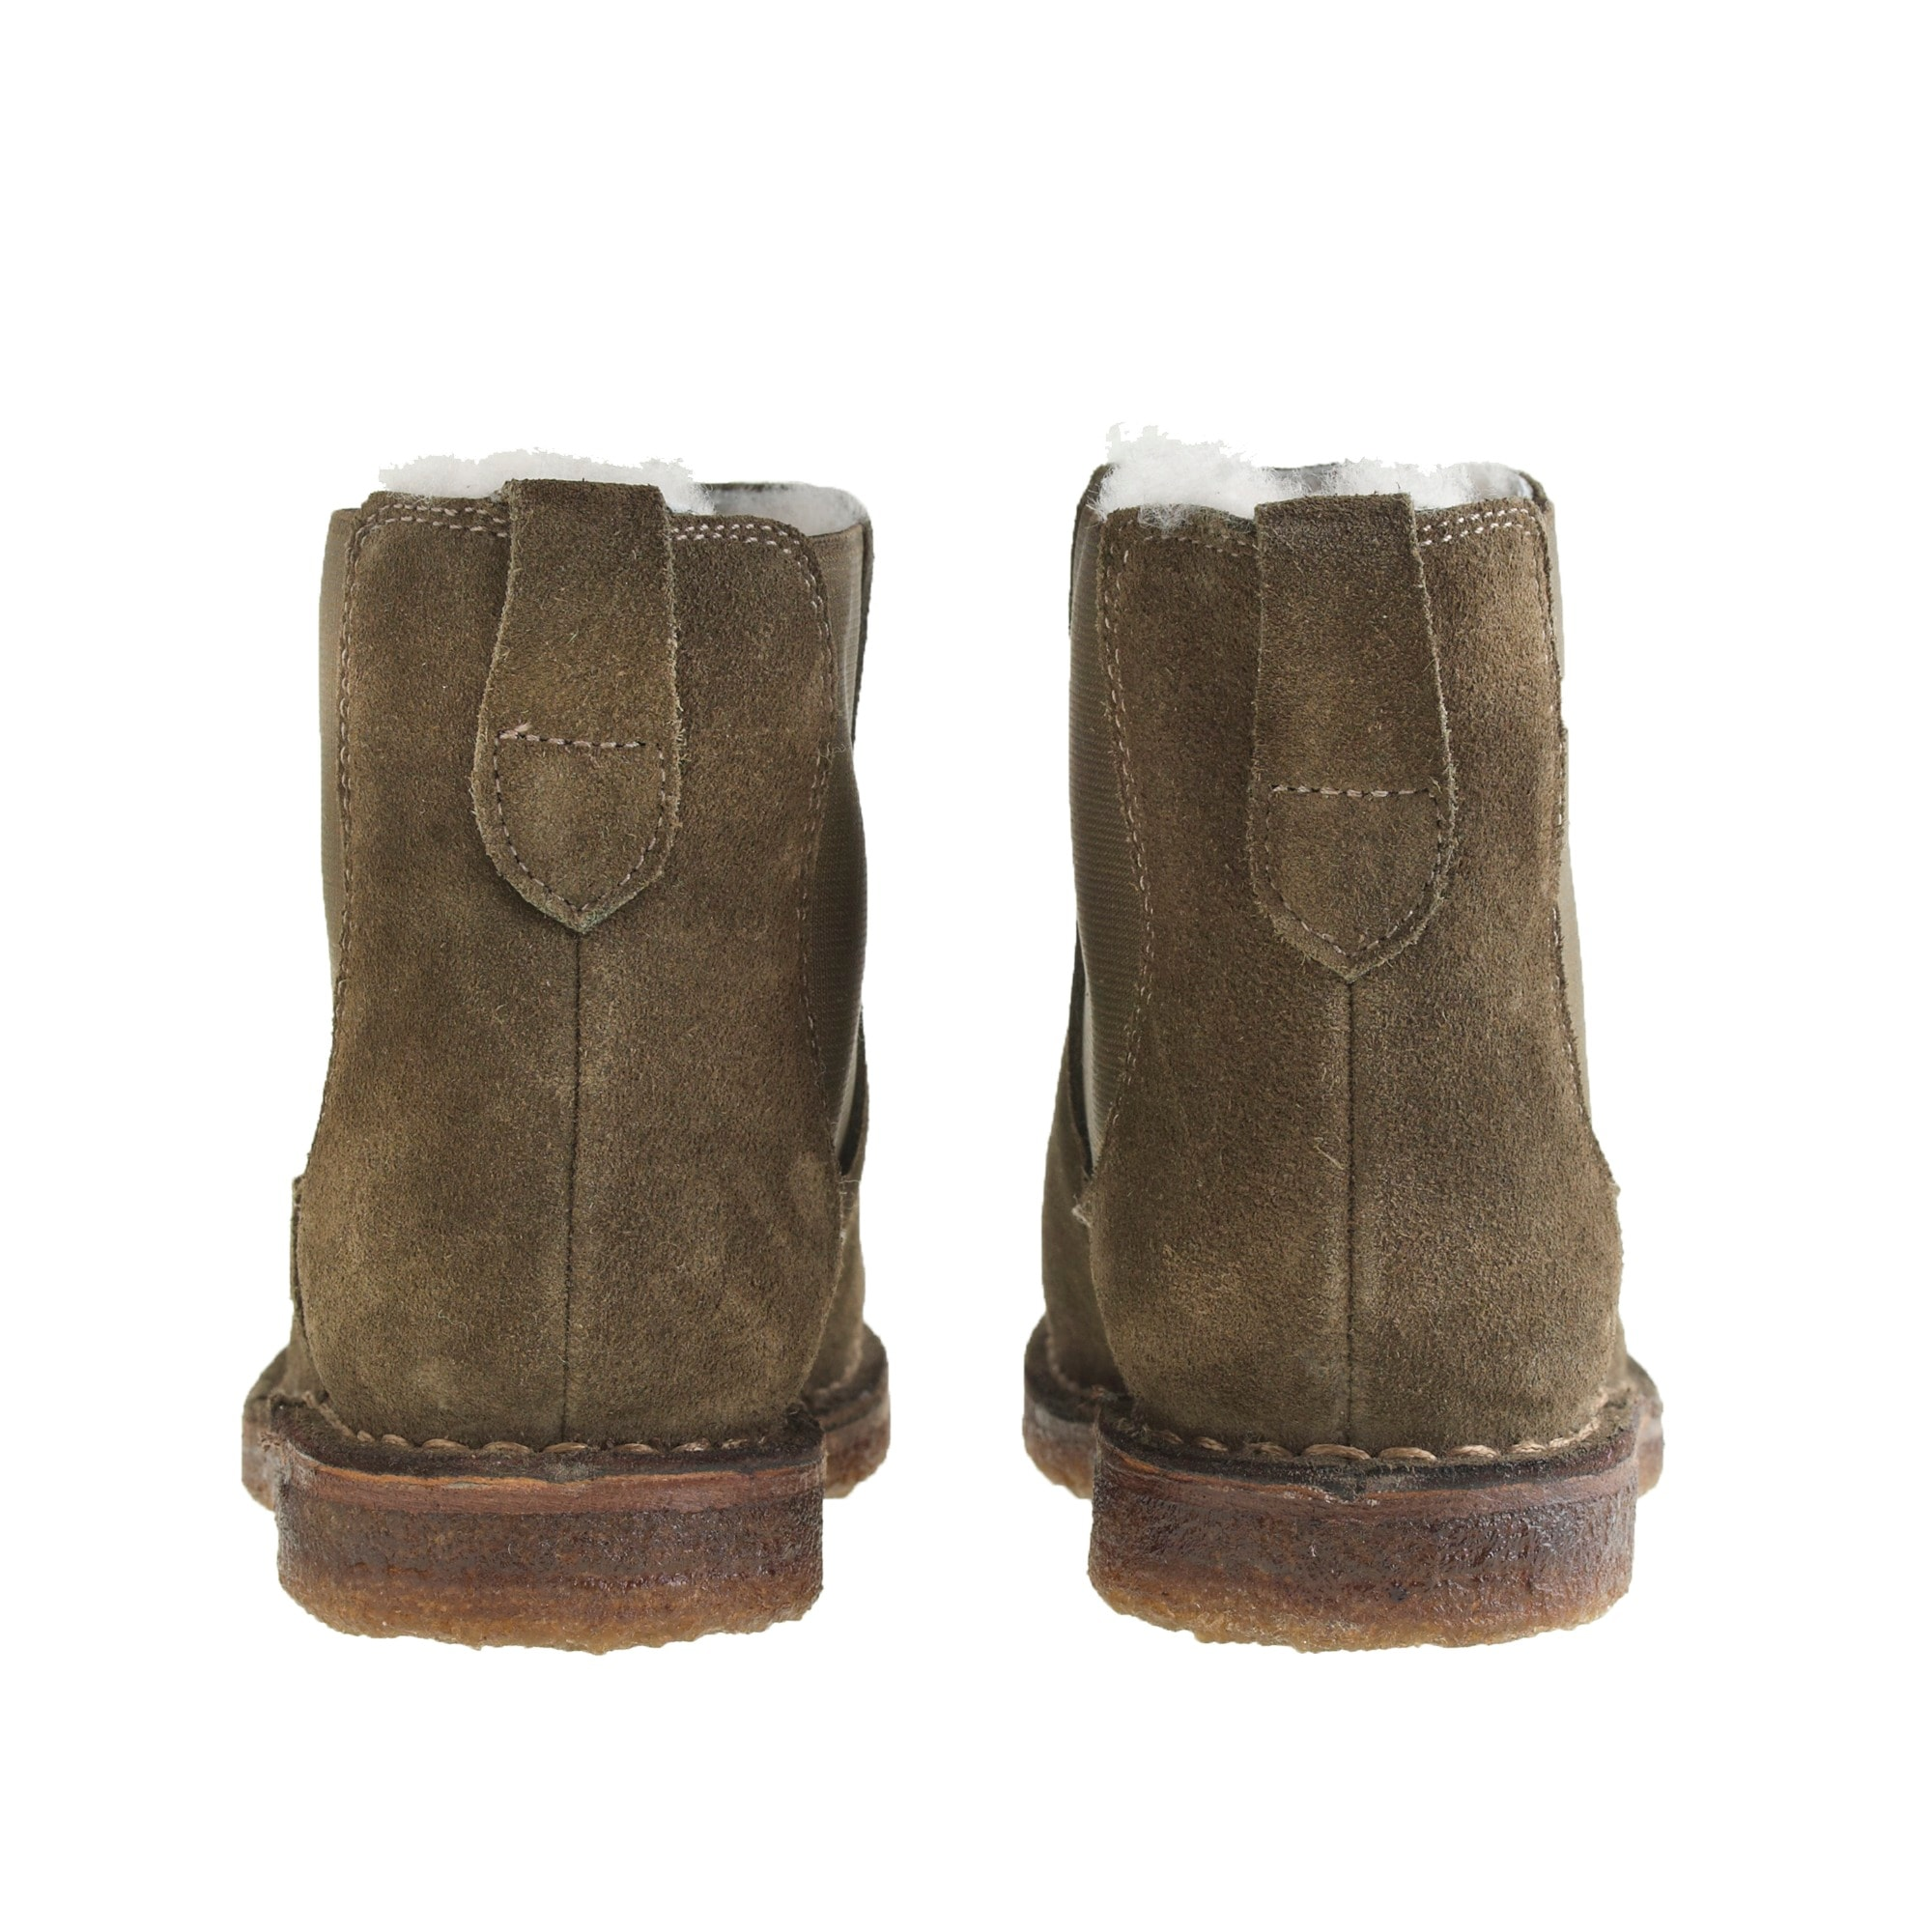 Image 3 for Boys' suede shearling-lined Chelsea boots